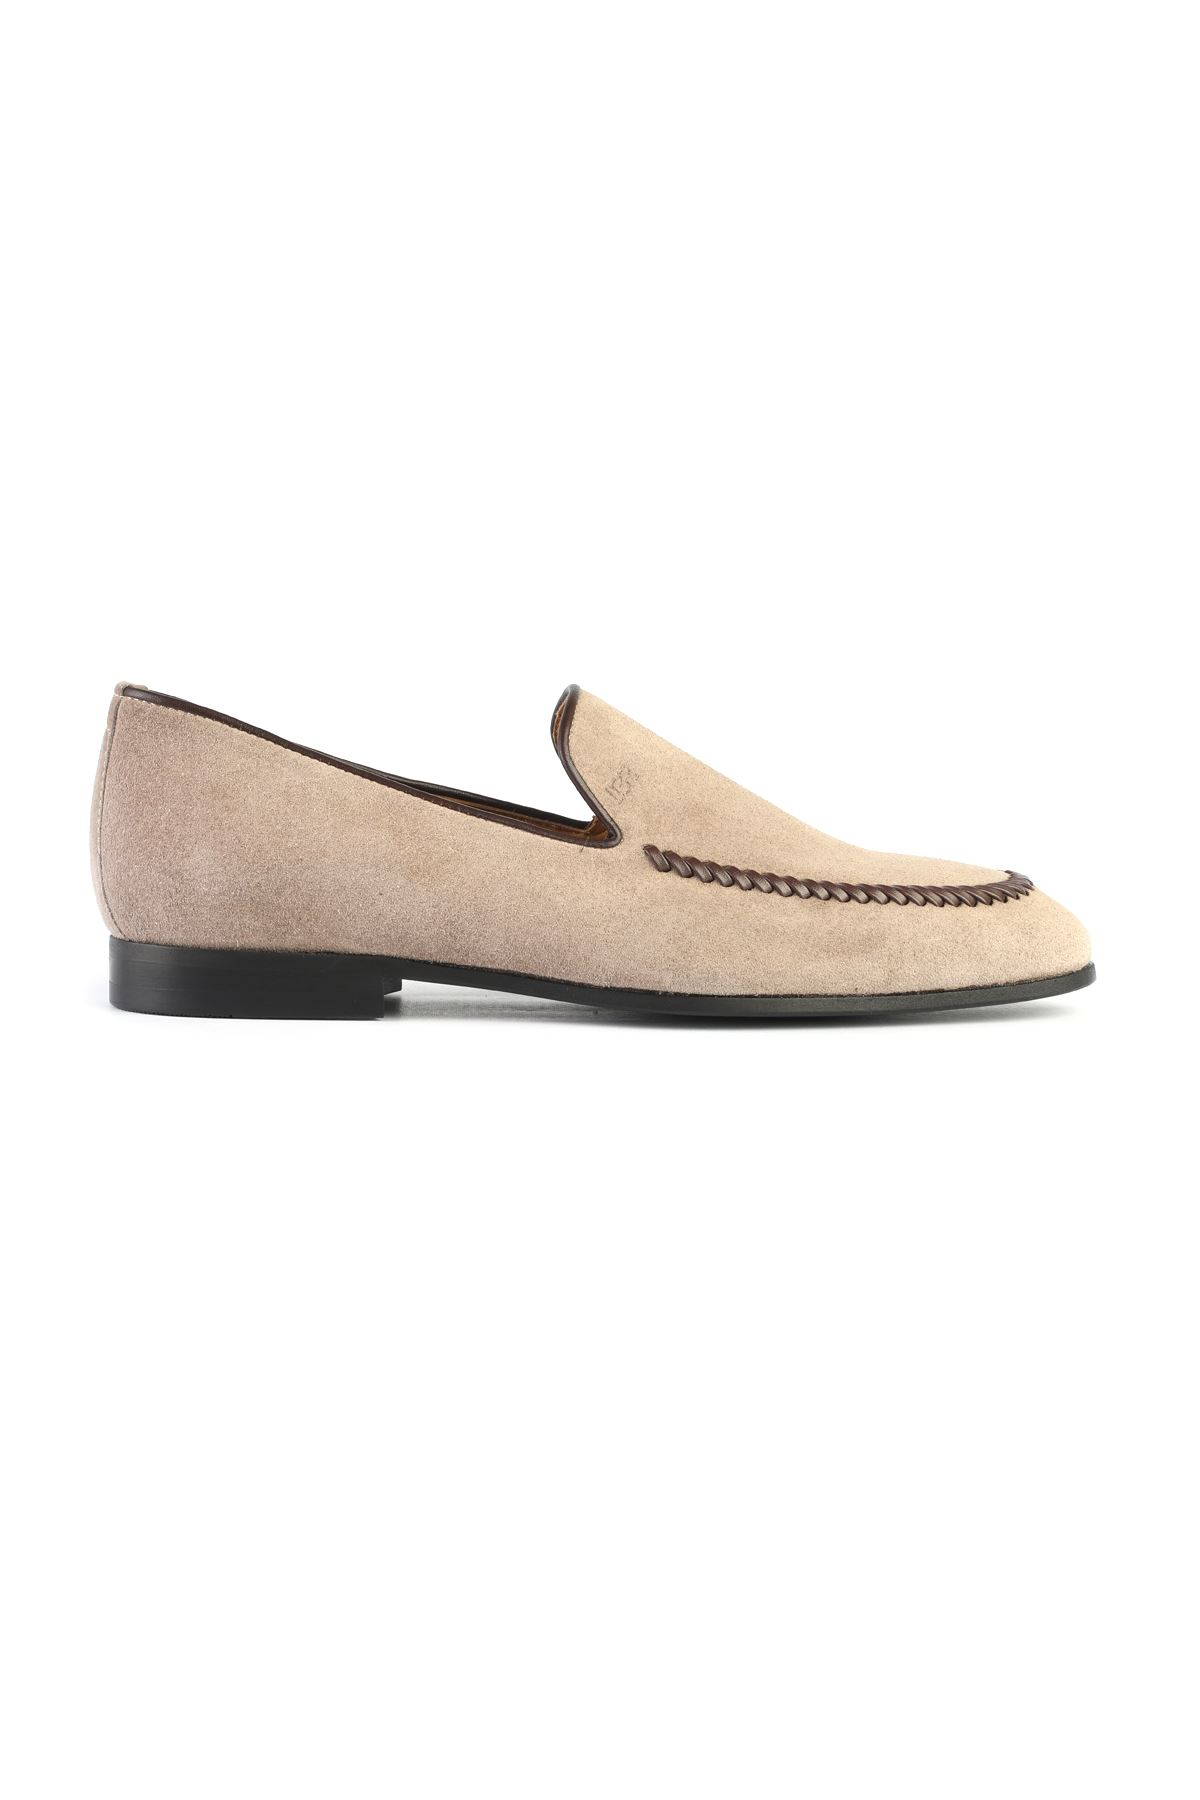 Libero 3260 Mink Loafer Shoes